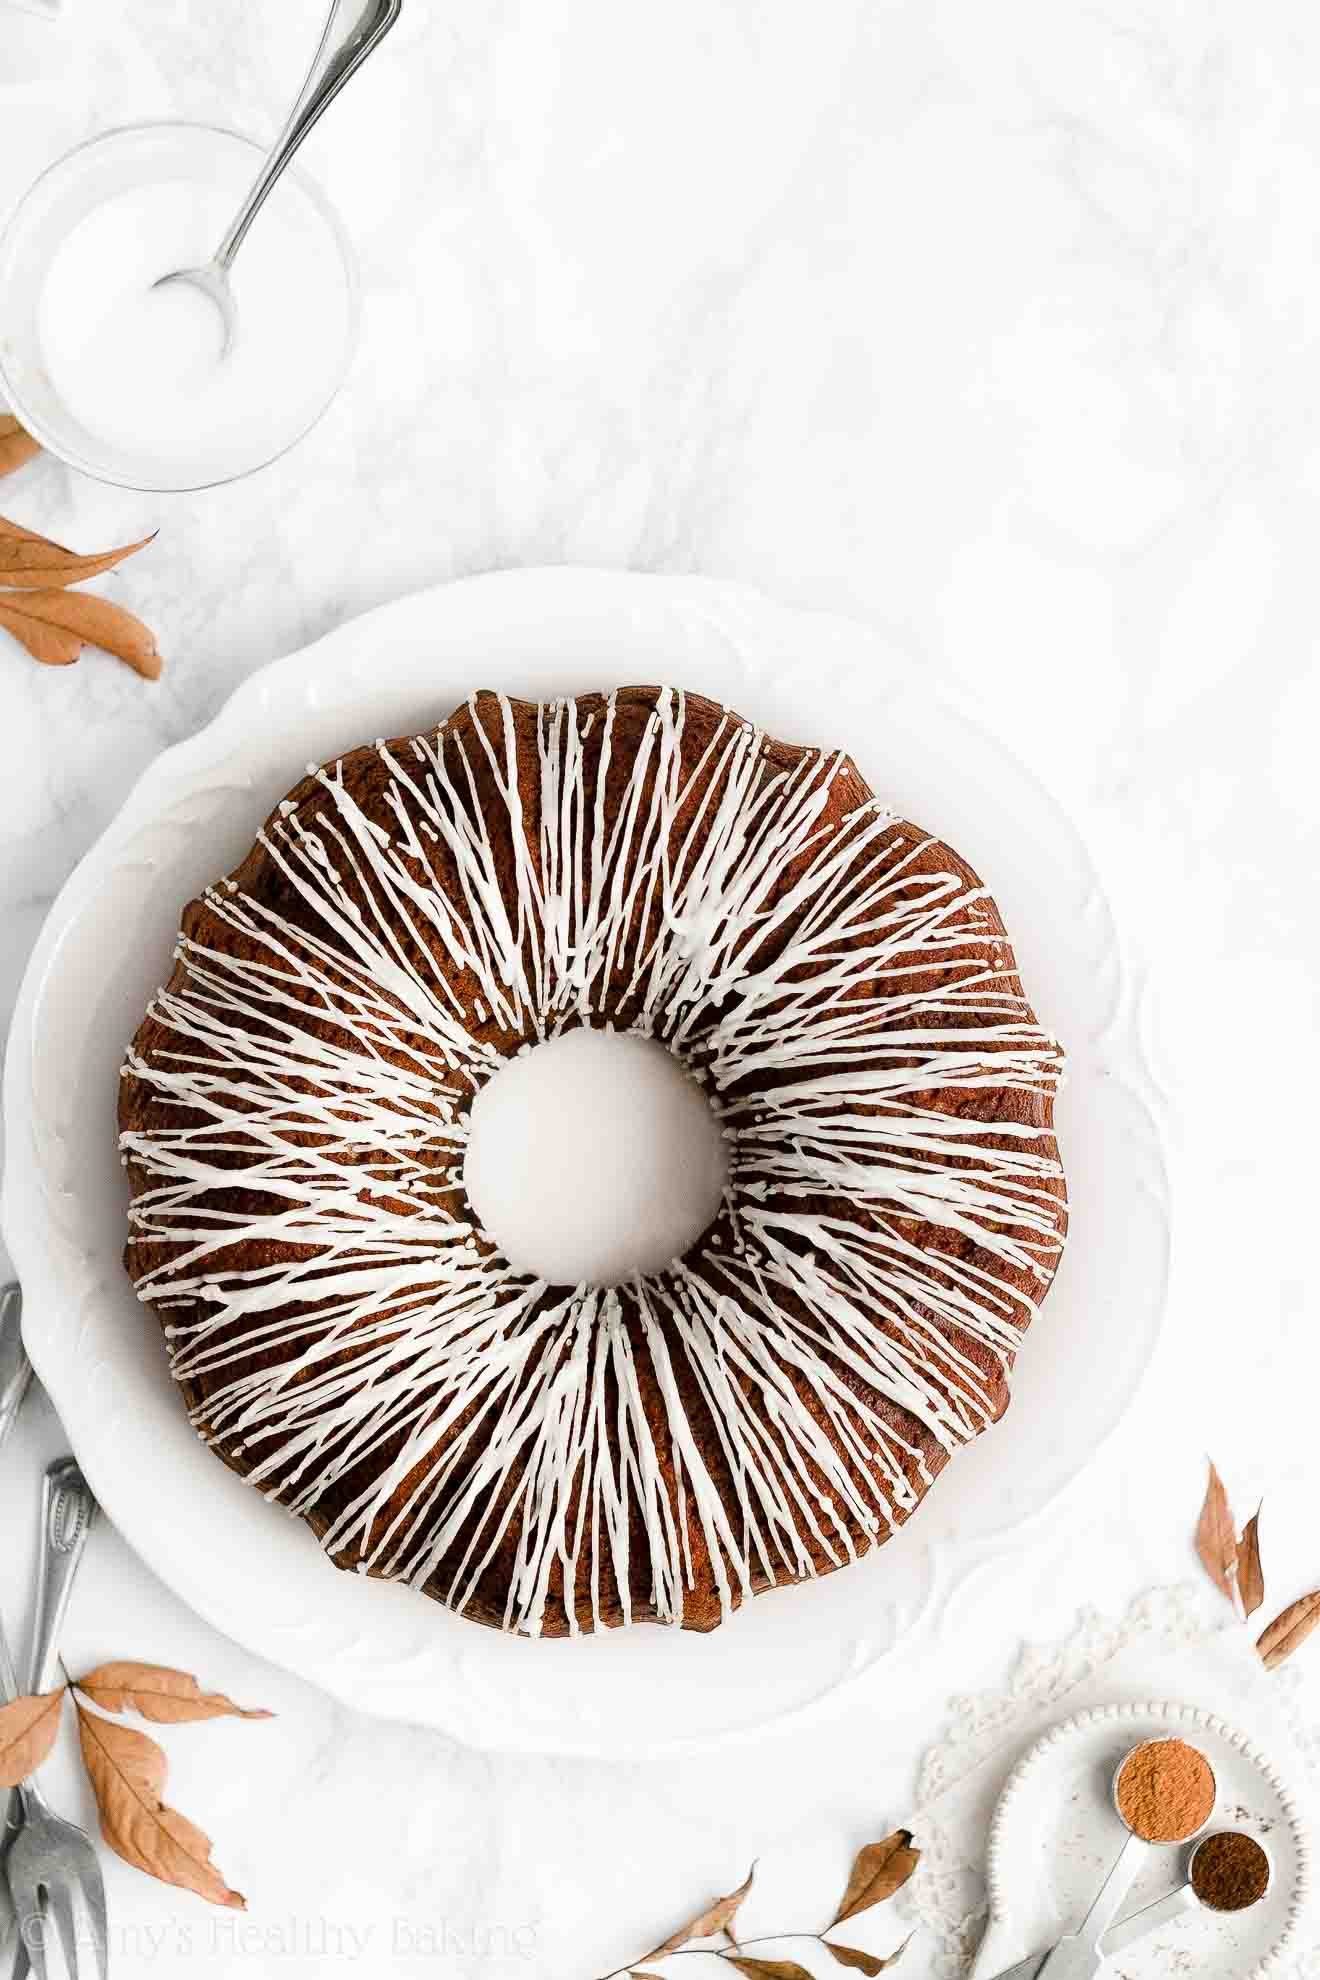 BEST EVER Easy Healthy Low Fat Low Sugar Moist Gingerbread Bundt Cake